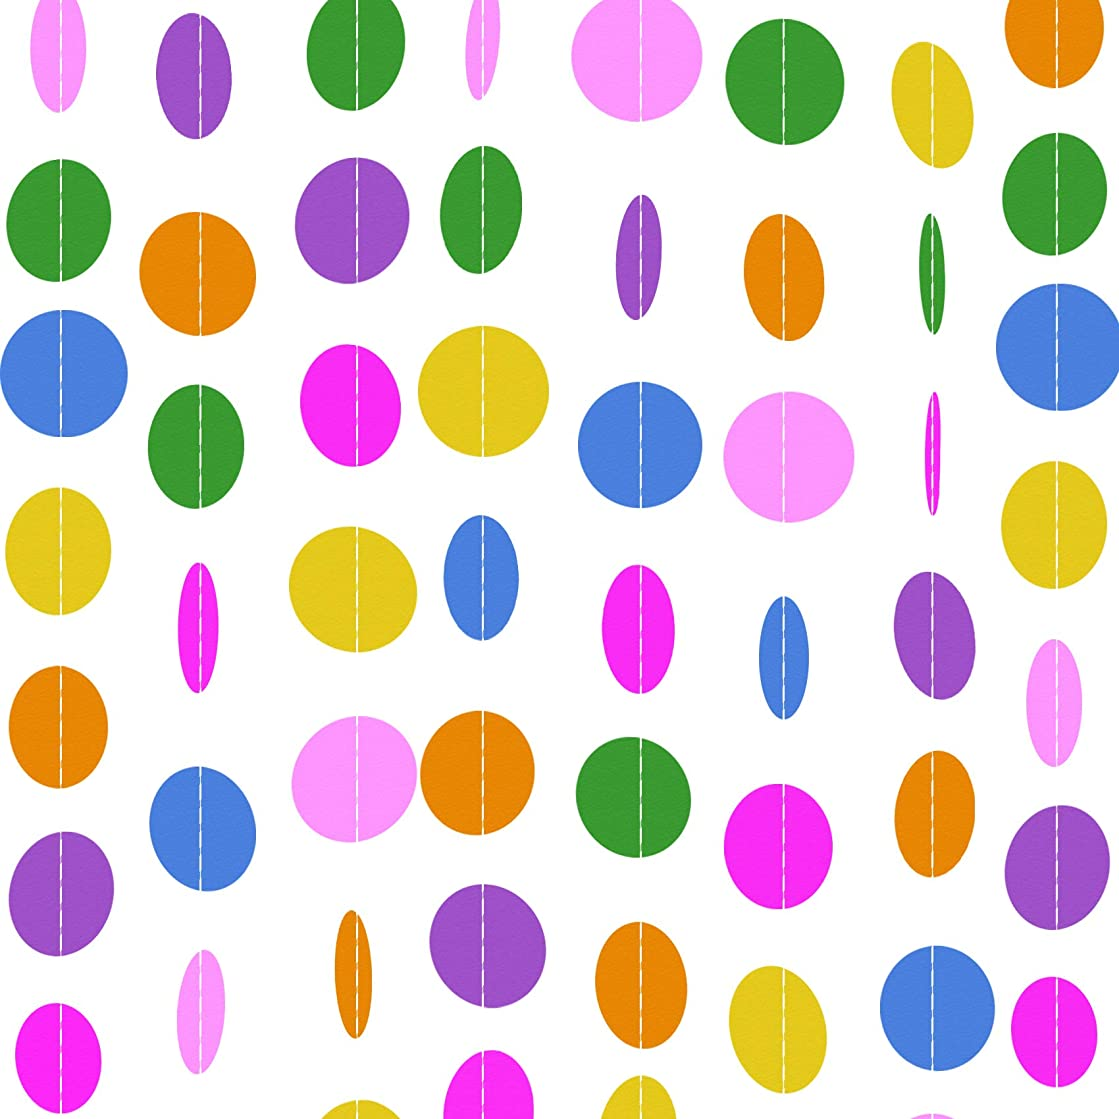 LURICO 13.1FT × 5 Pack Colorful Fiesta Streamers Paper Garland Circle Dots Hanging Decorations for Home Decor Birthday Party Wedding Decorations (66FT/20M)